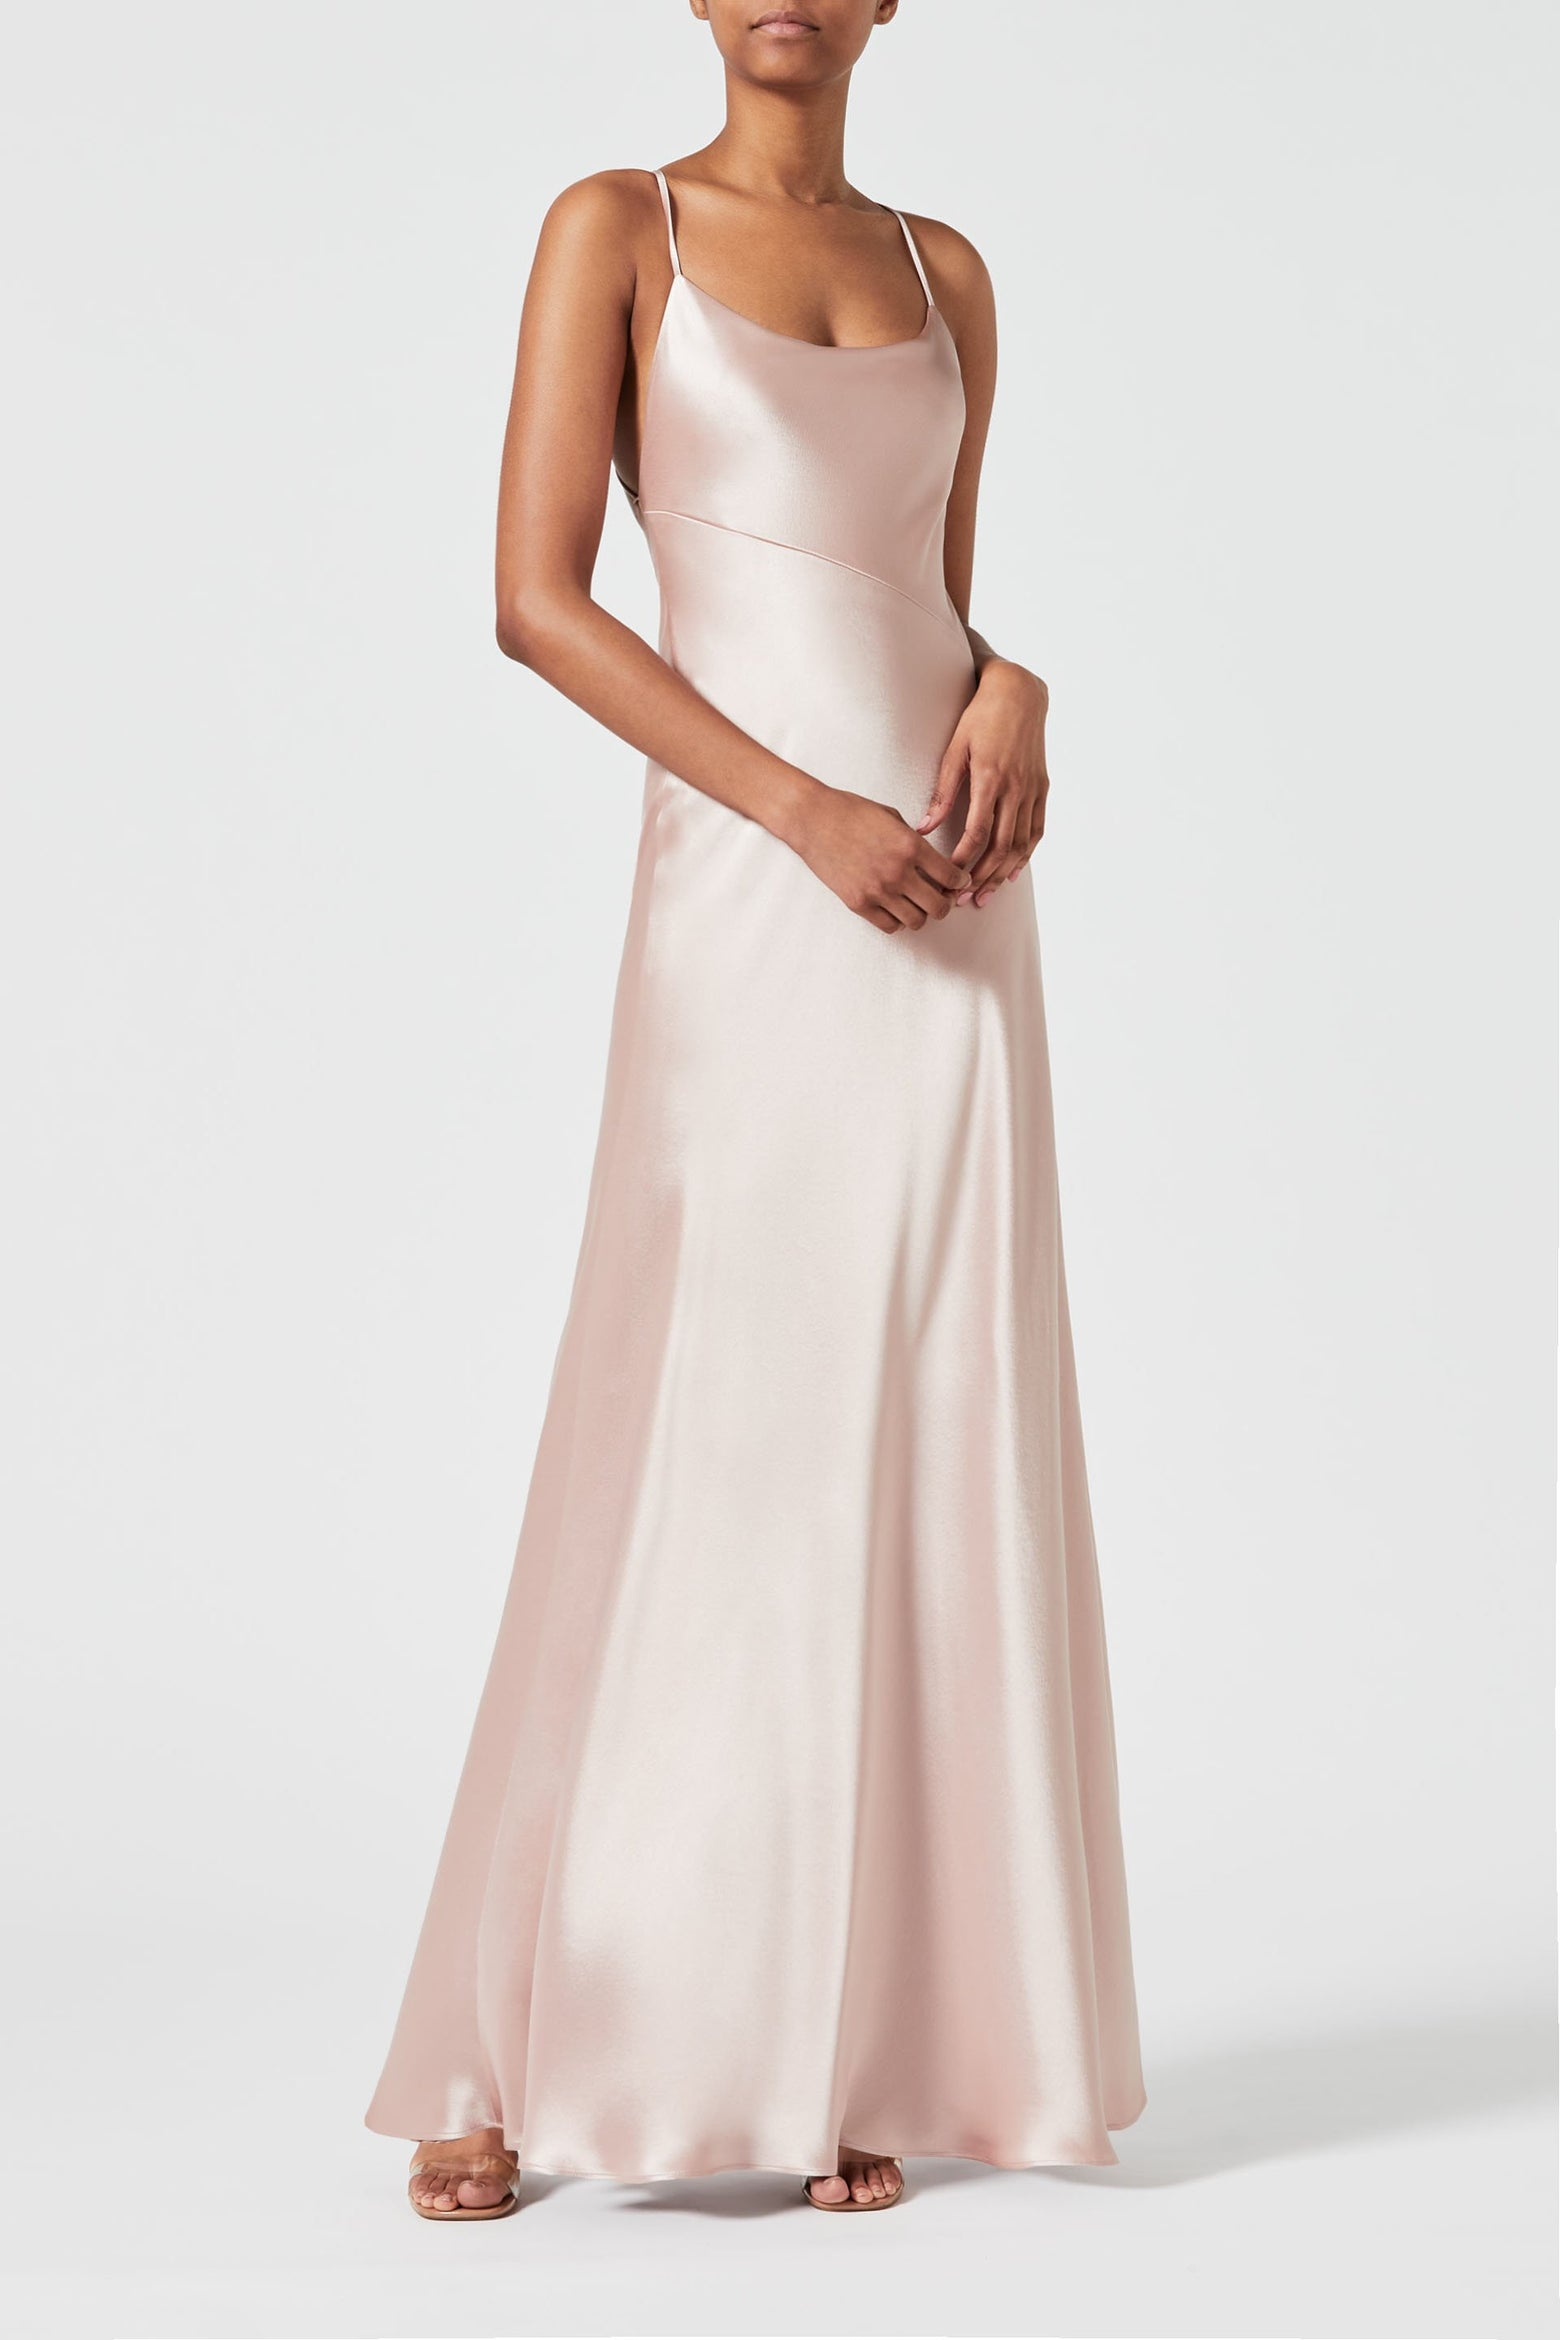 Serena Dress - Rose Nude